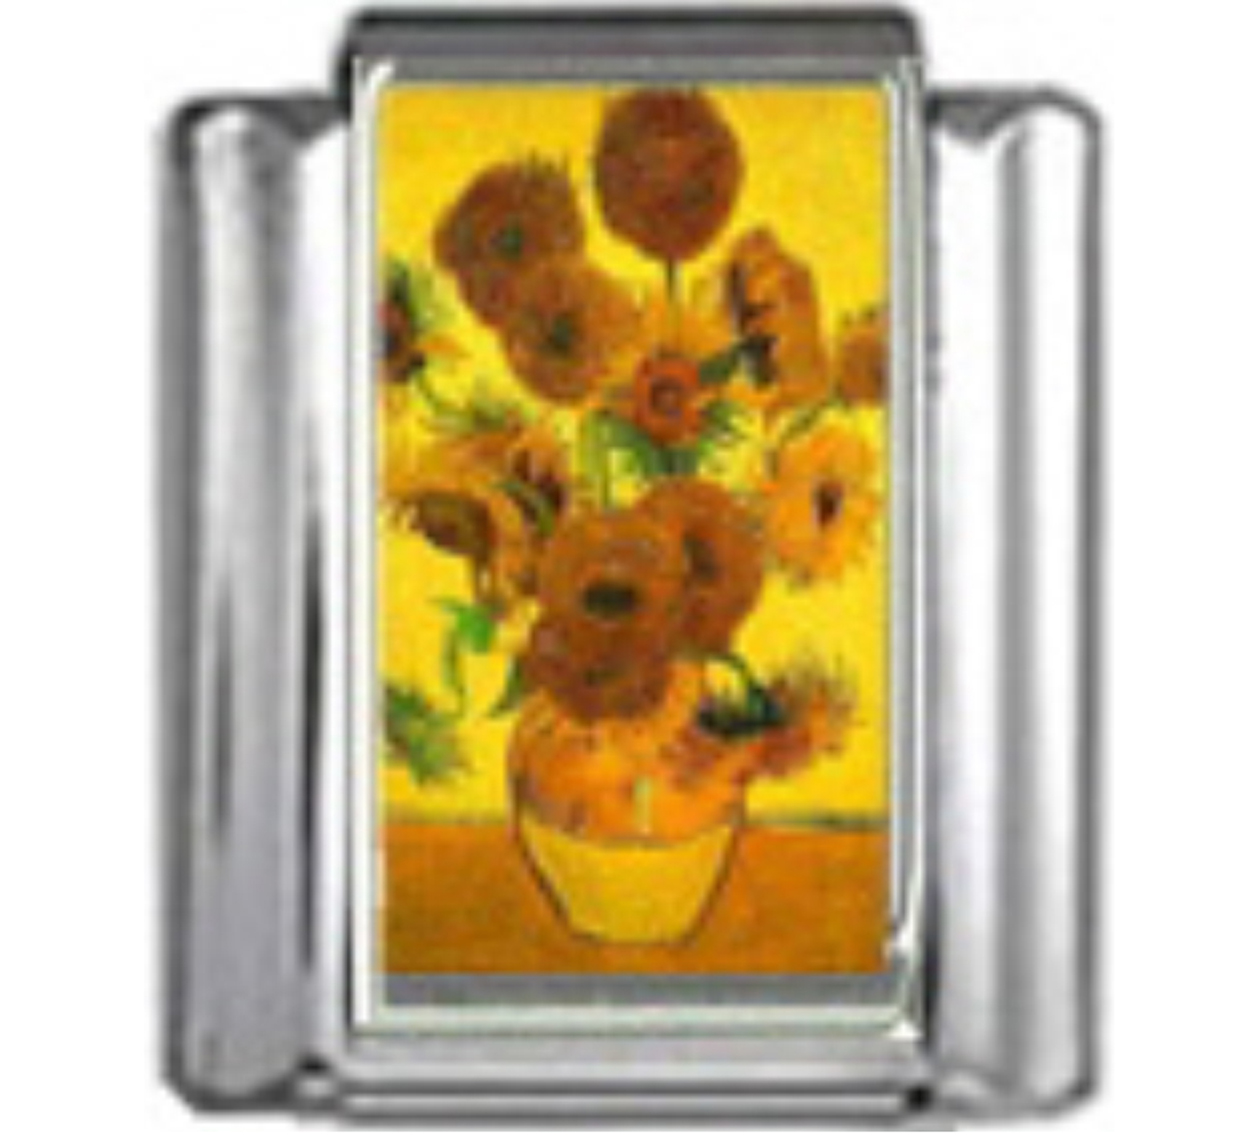 GA023-Sunflower-Vincent-Van-Gogh